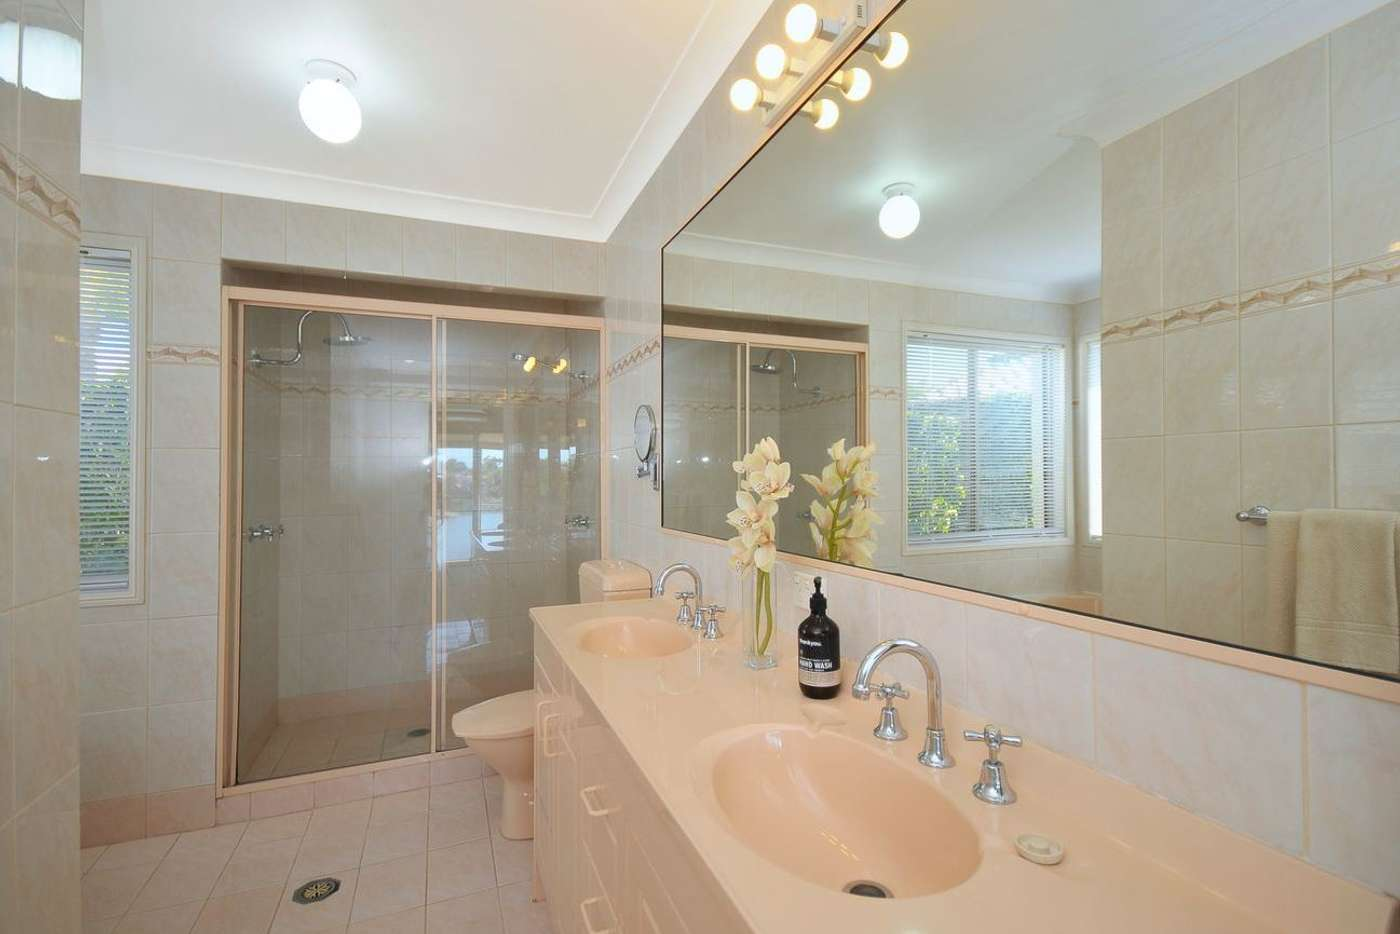 Seventh view of Homely house listing, 26 Mornington Terrace, Robina QLD 4226